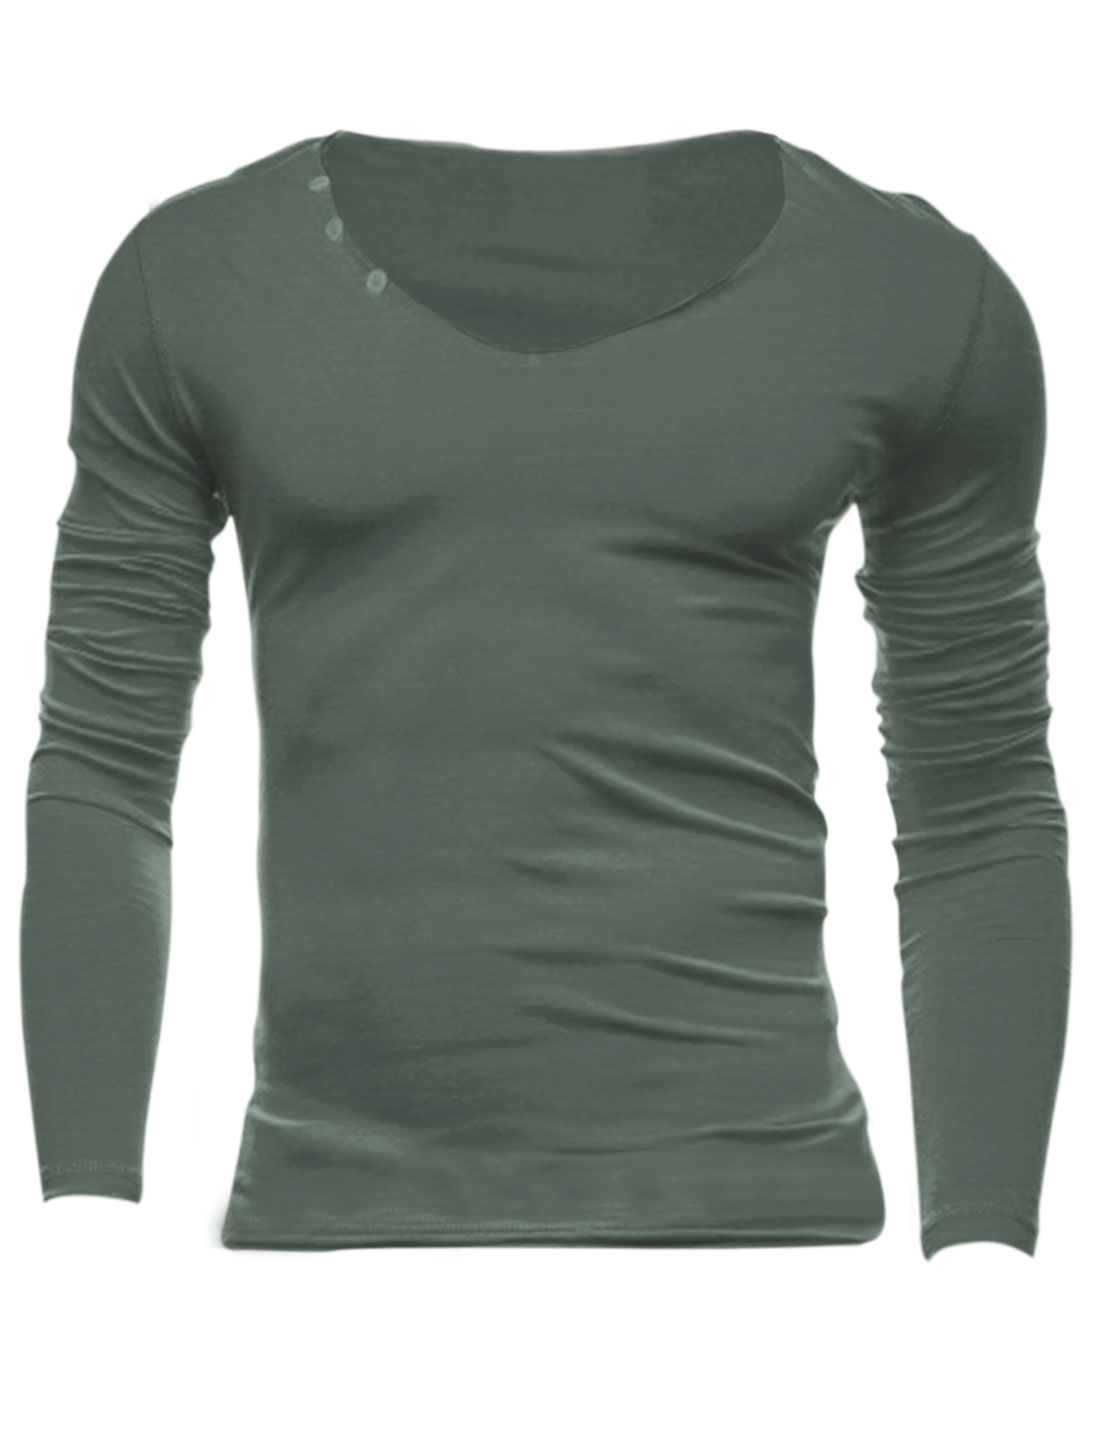 Men Seamless Round Neck Buttons Decor Casual Slim Tee Shirt Taupe M